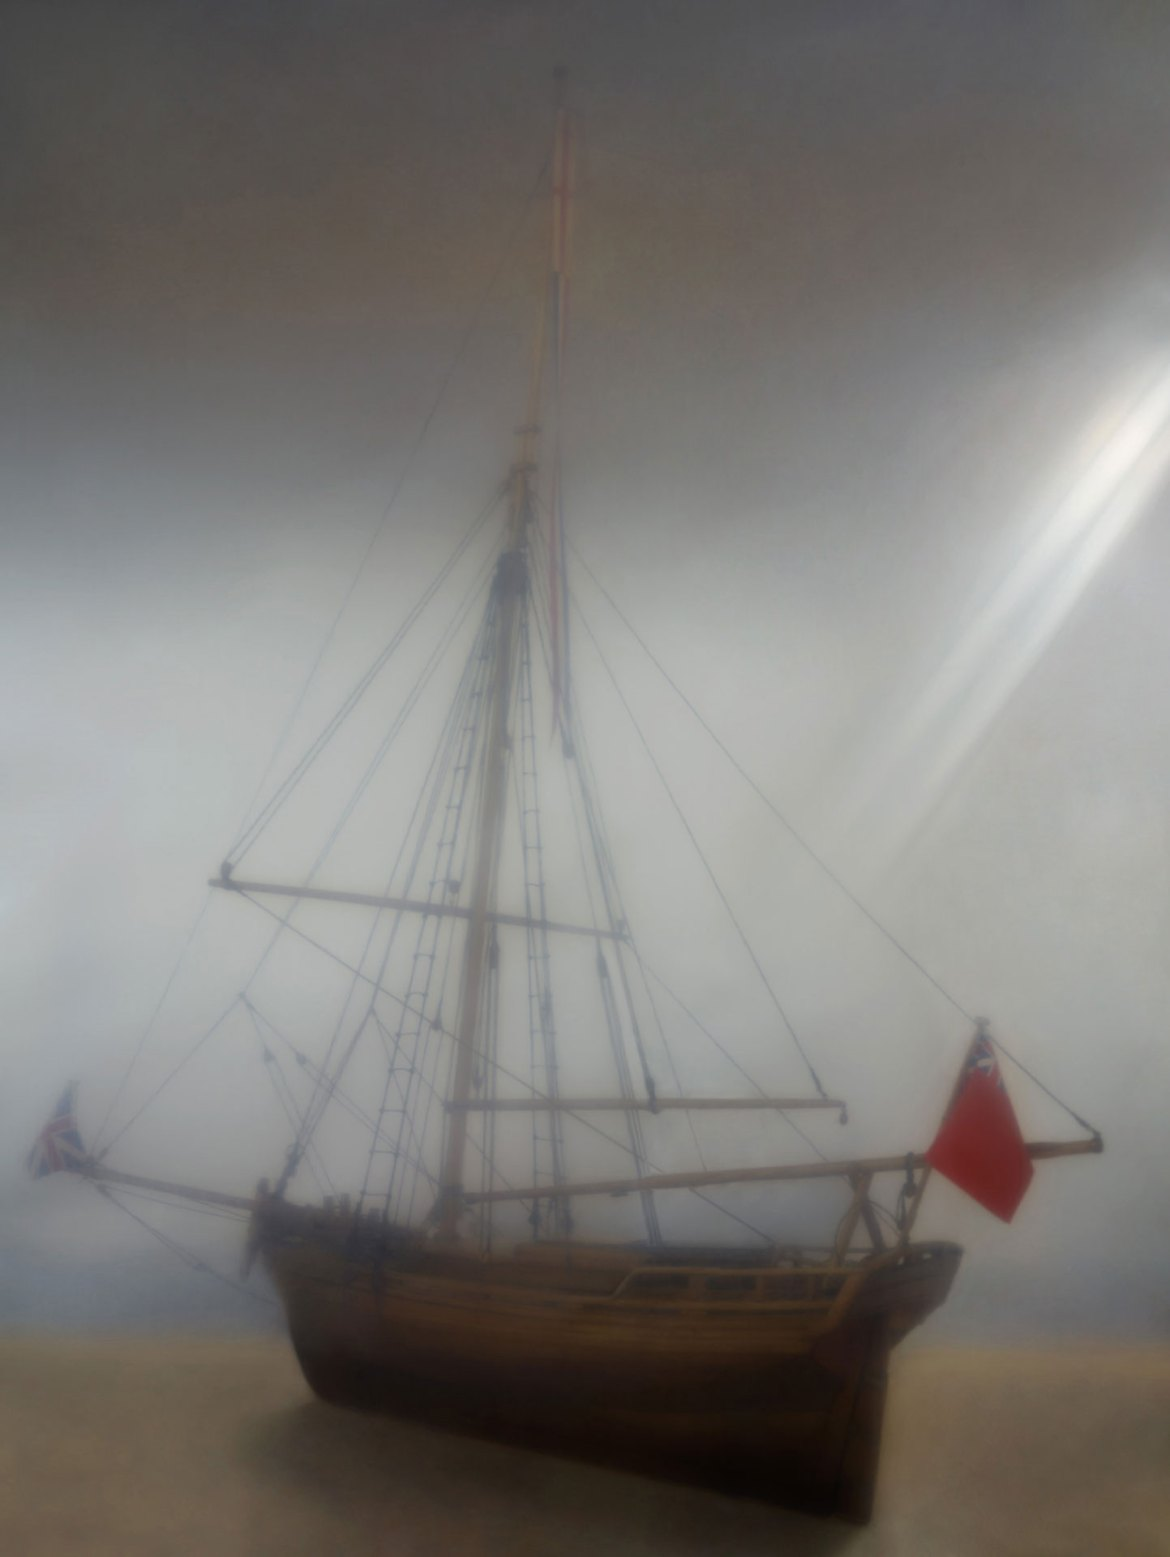 Photograph of the science museum's ship model collection